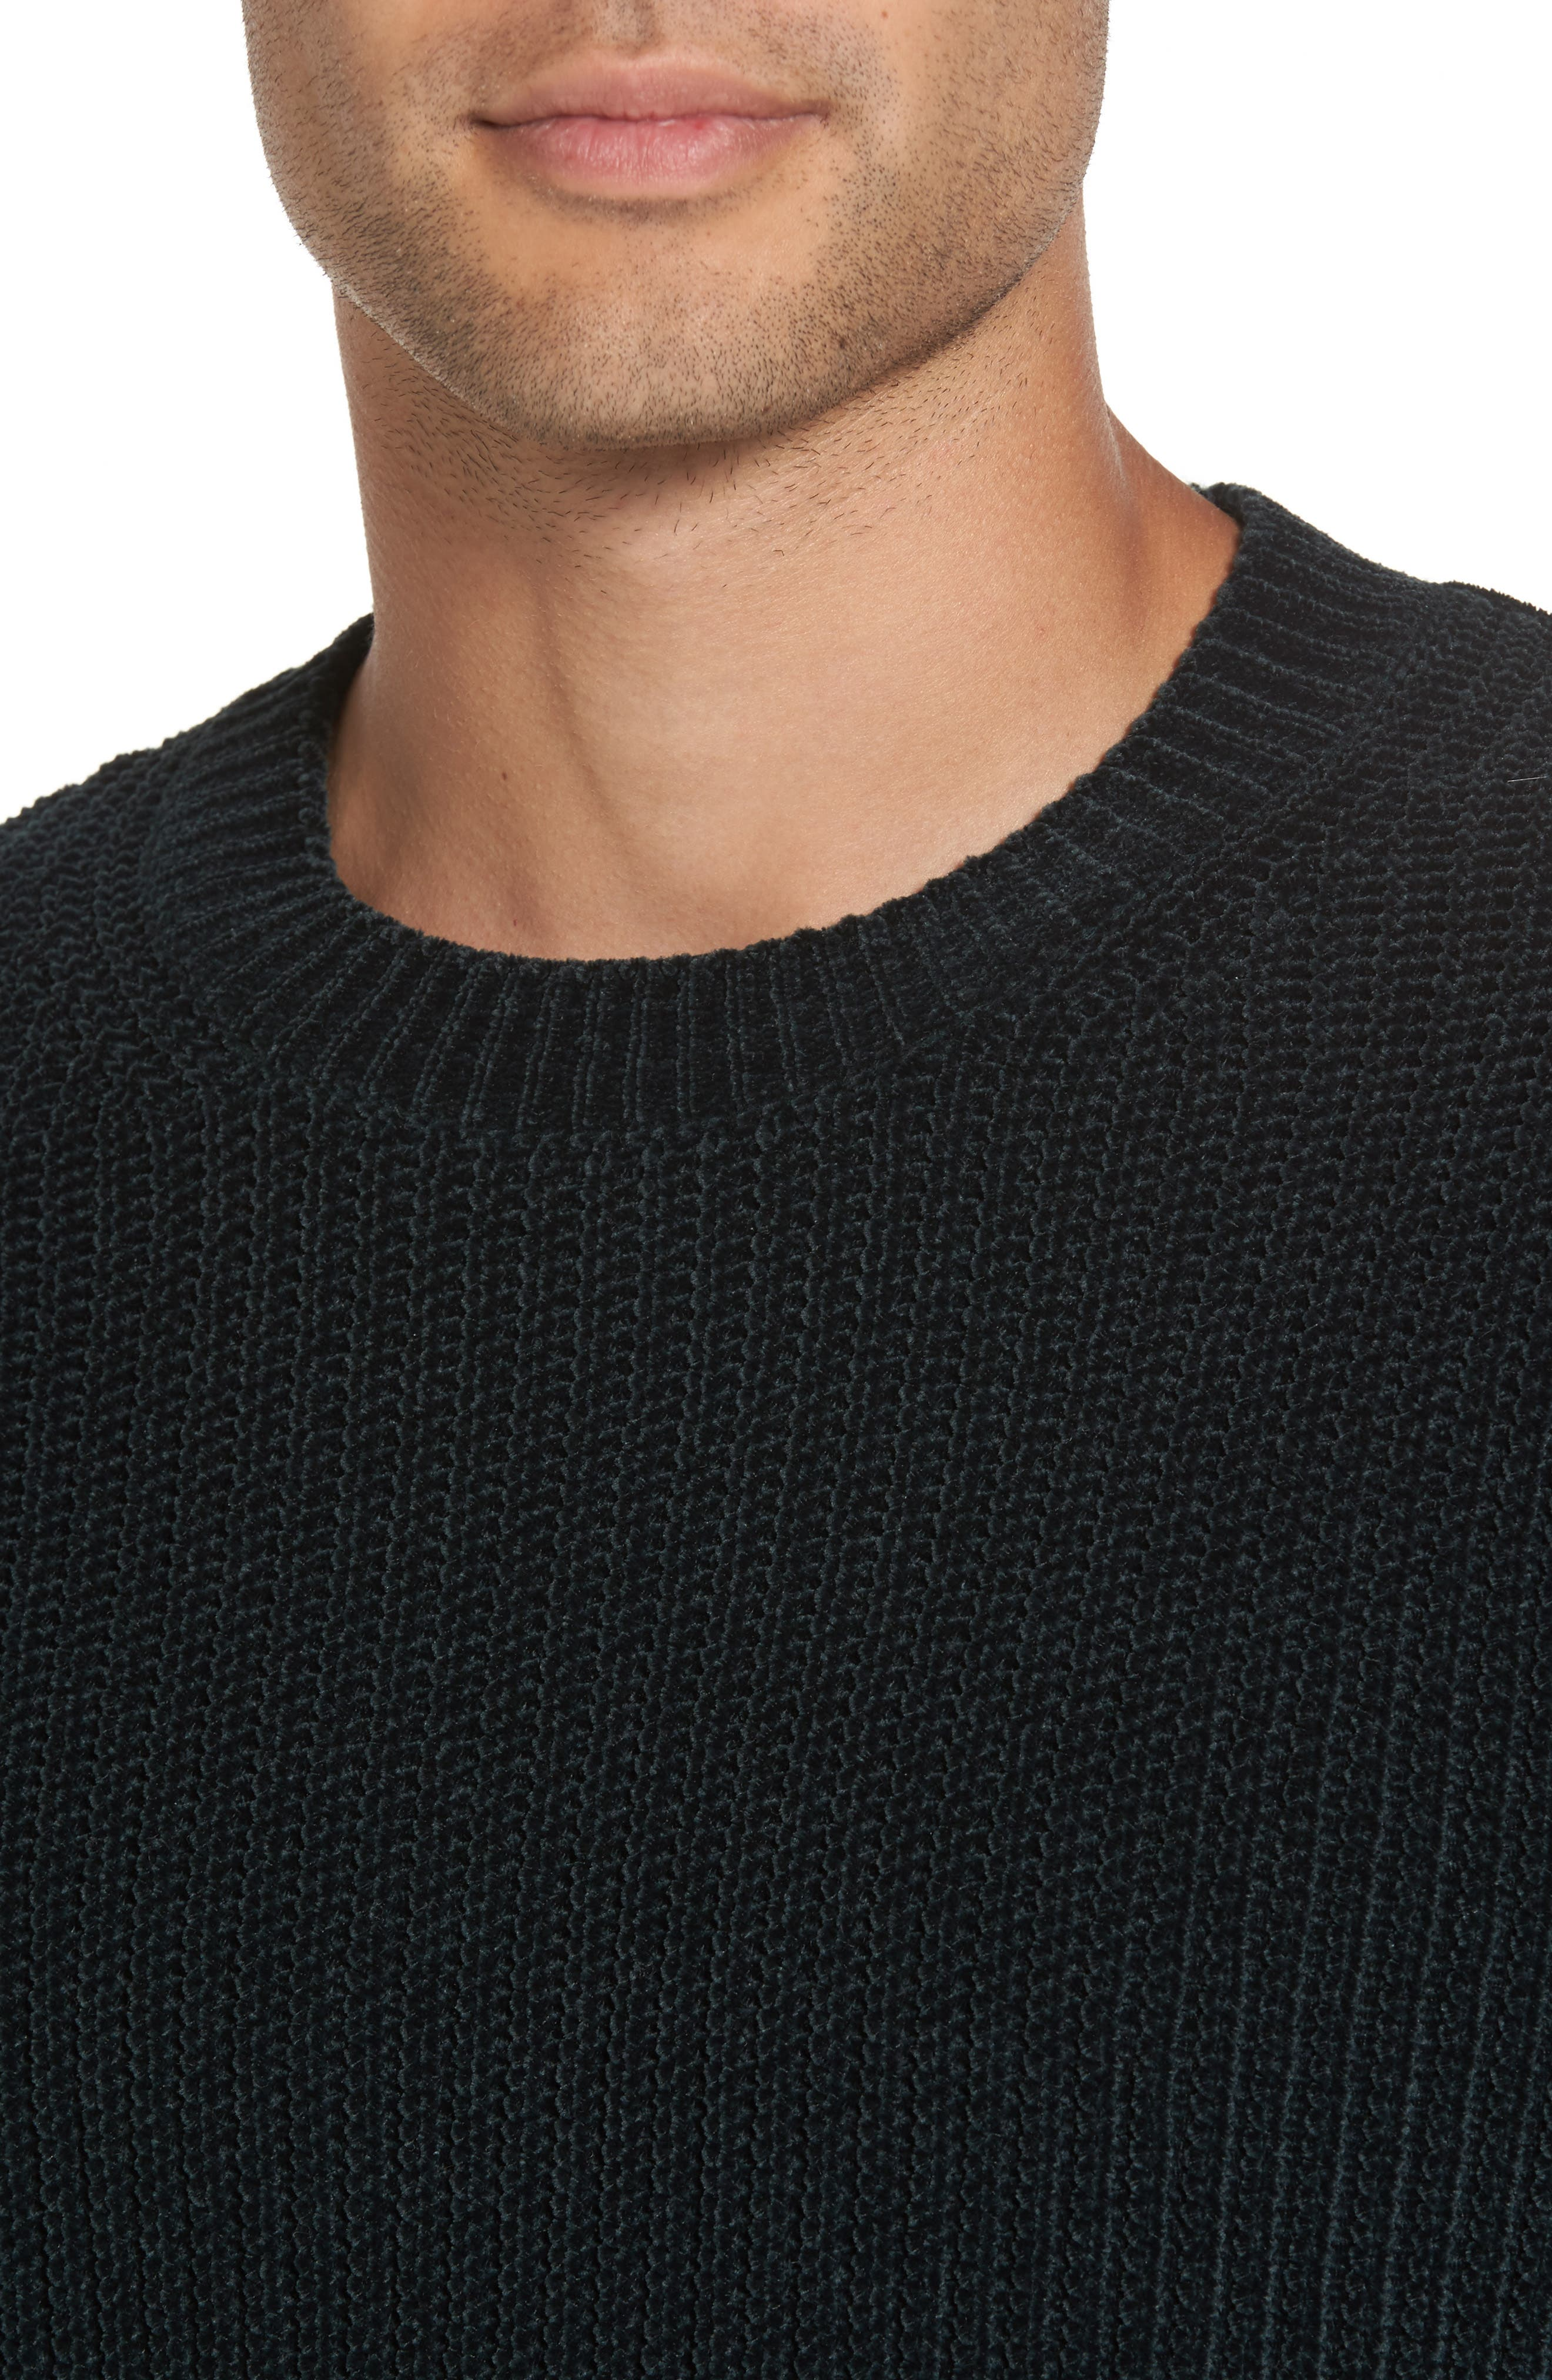 Ribbed Crewneck Sweater,                             Alternate thumbnail 4, color,                             357